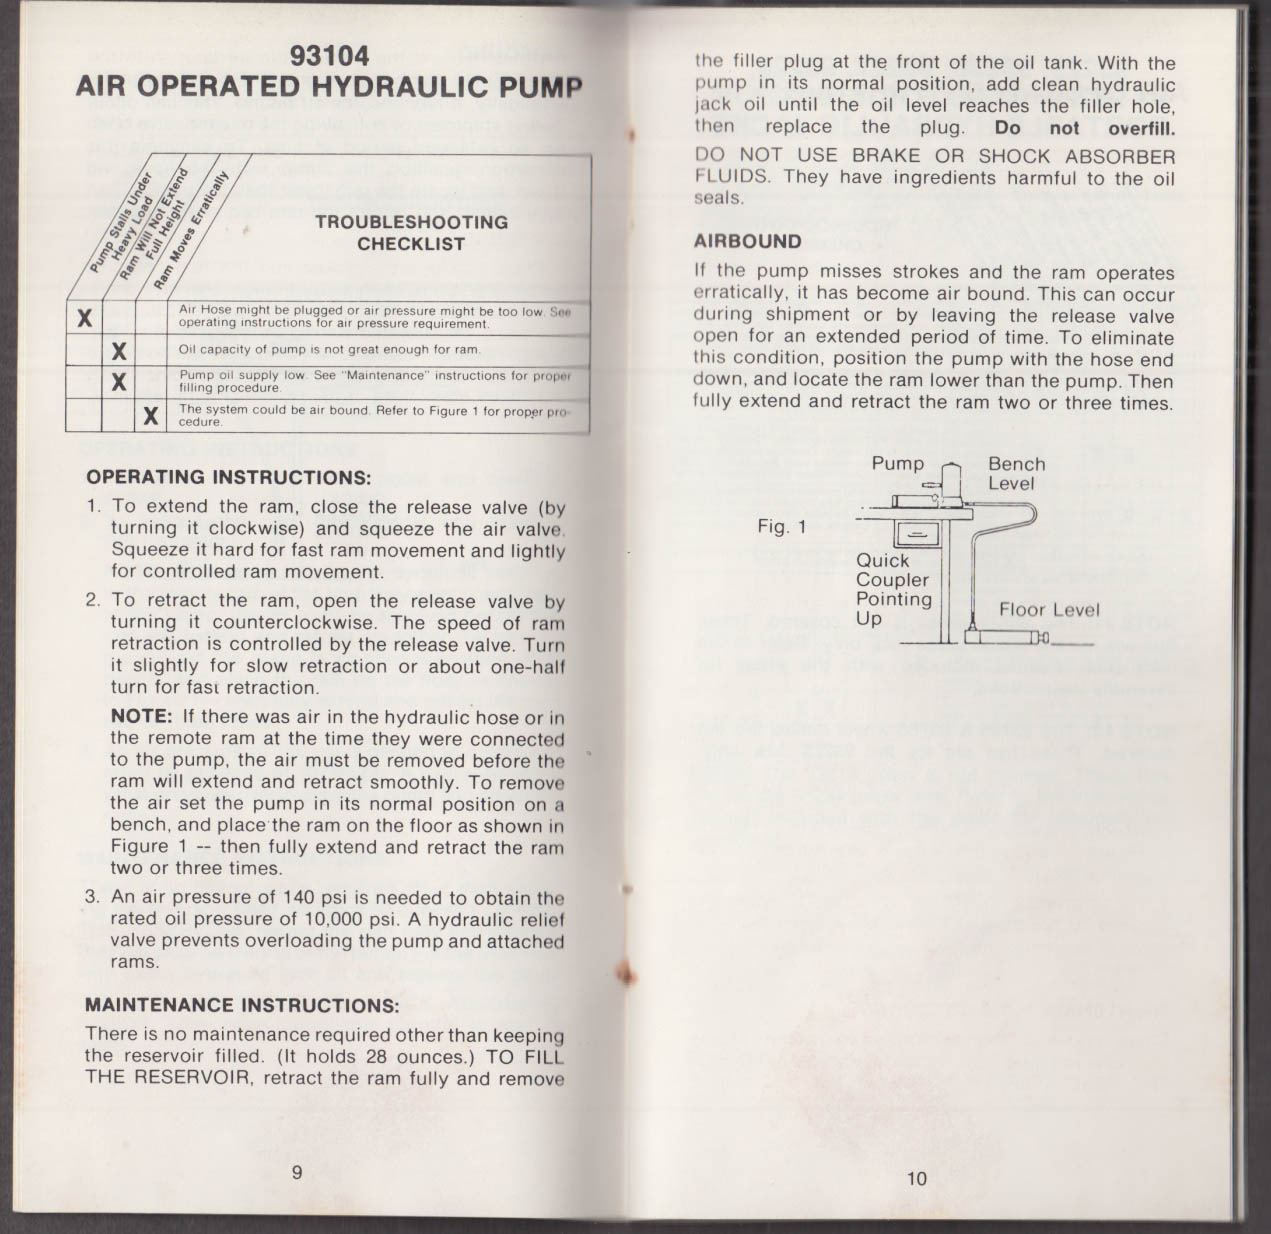 Walker Hydraulic Jack Troubleshooting Pocket Guide 1978